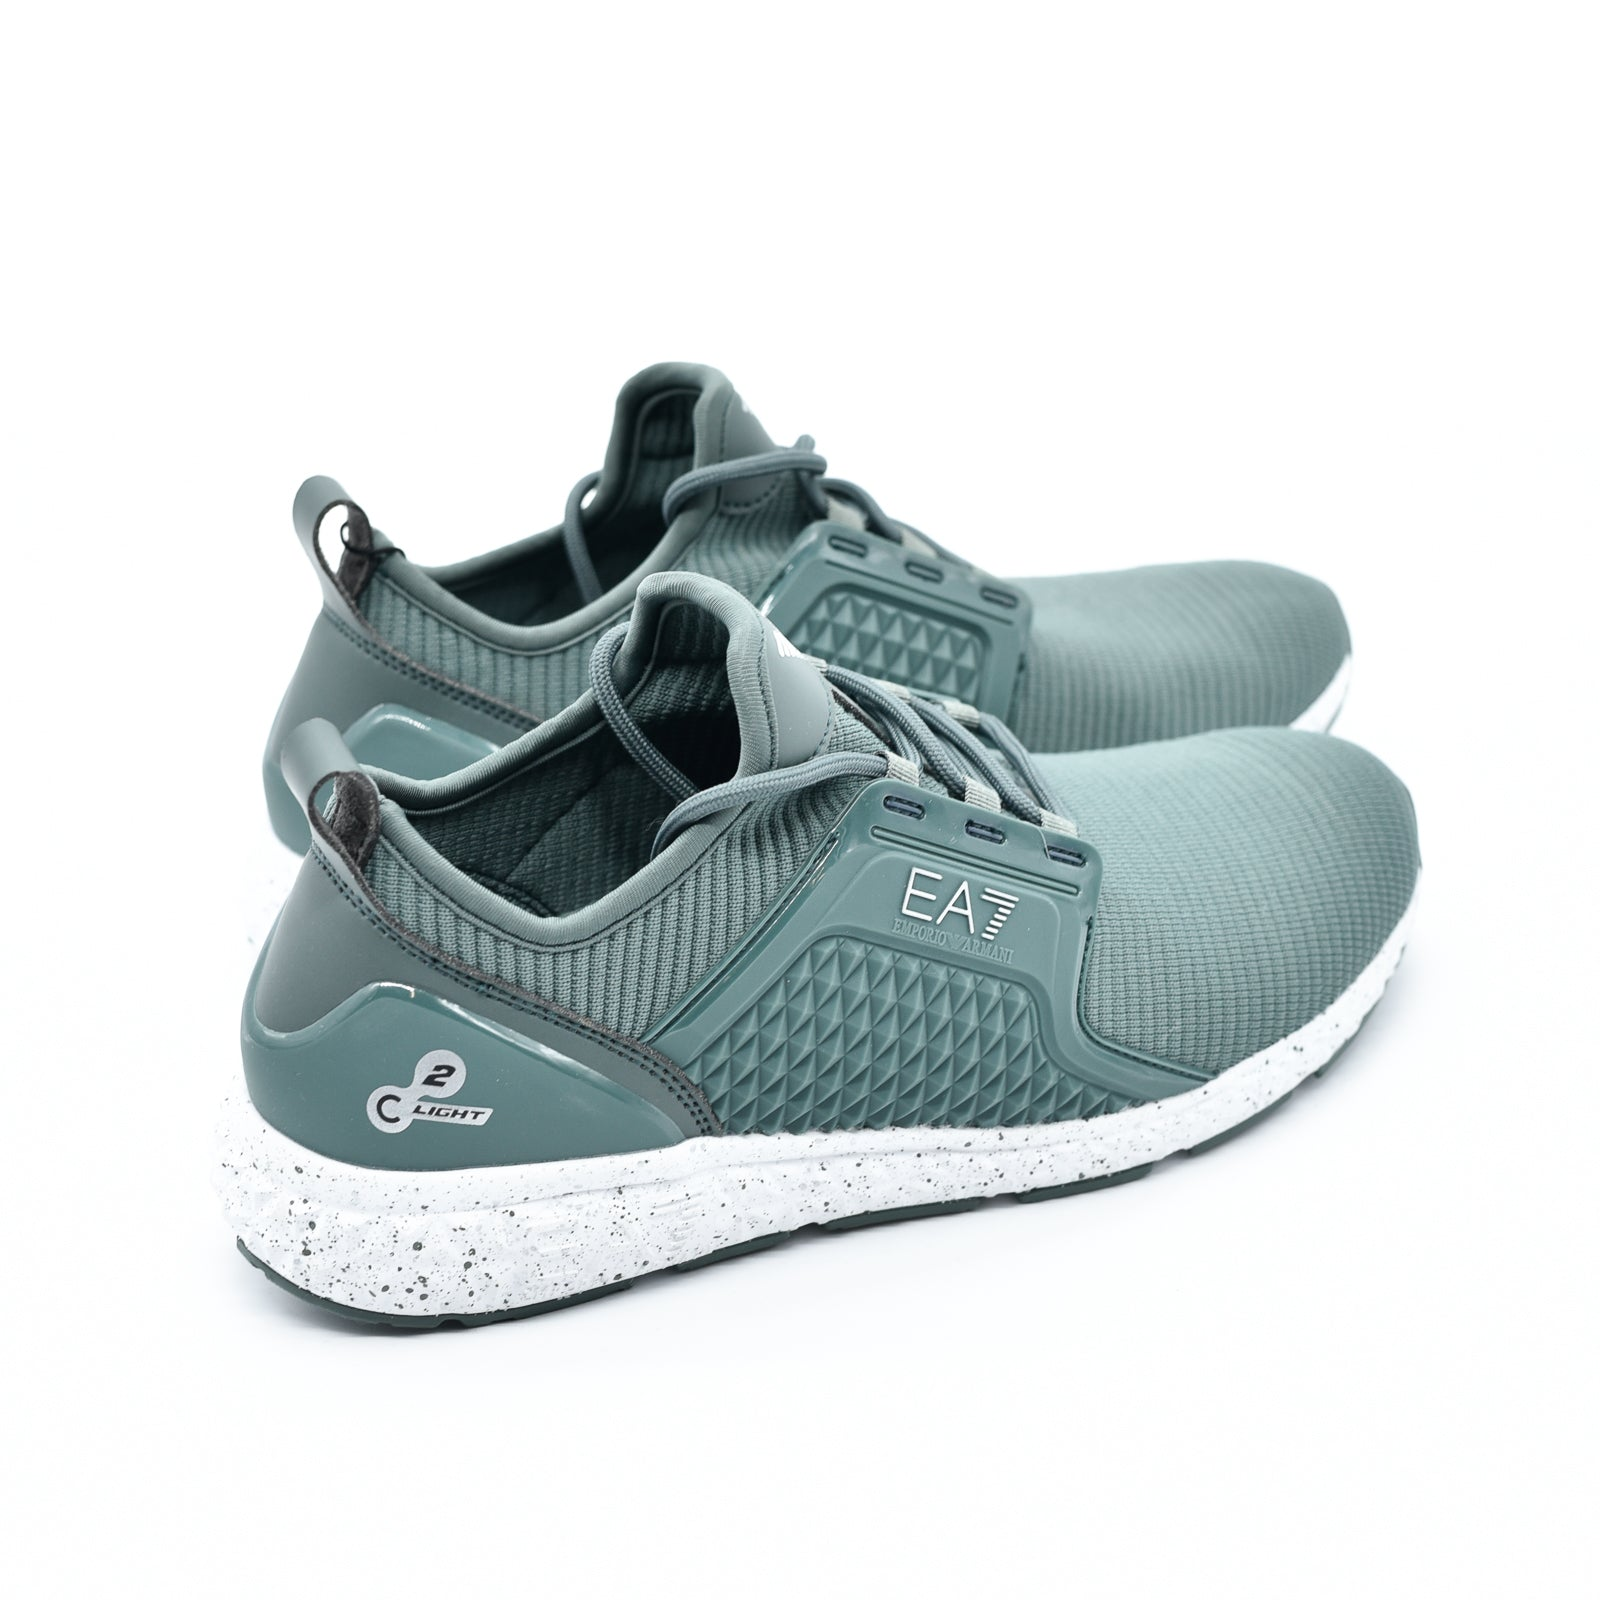 Scarpa Armani Jeans Sneakers Light Uomo Verde Light